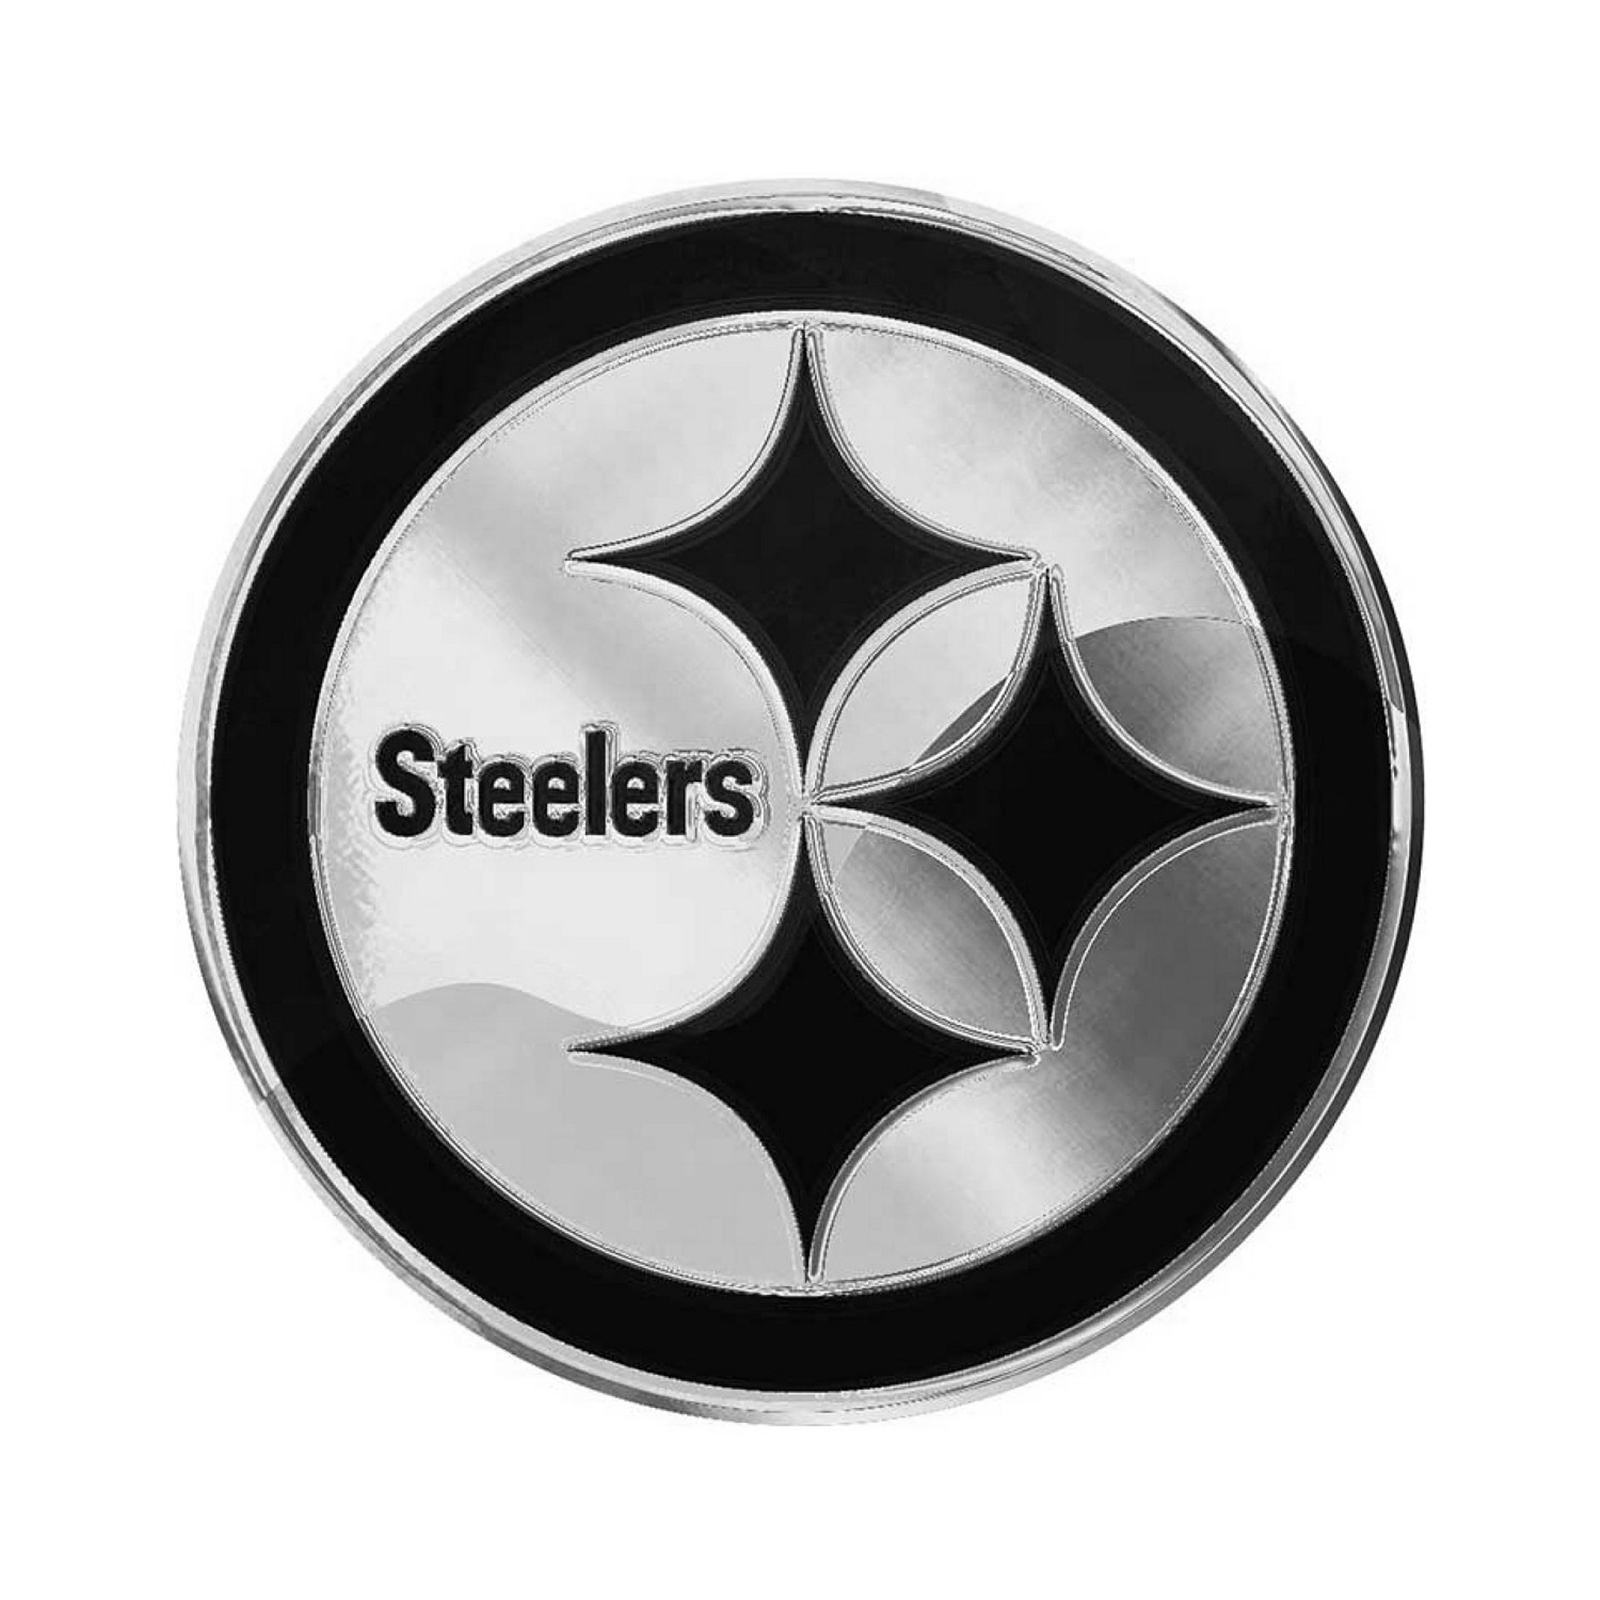 Details about Pittsburgh Steelers Premium Solid Metal Logo Car Truck Emblem  Decal Chrome Auto.